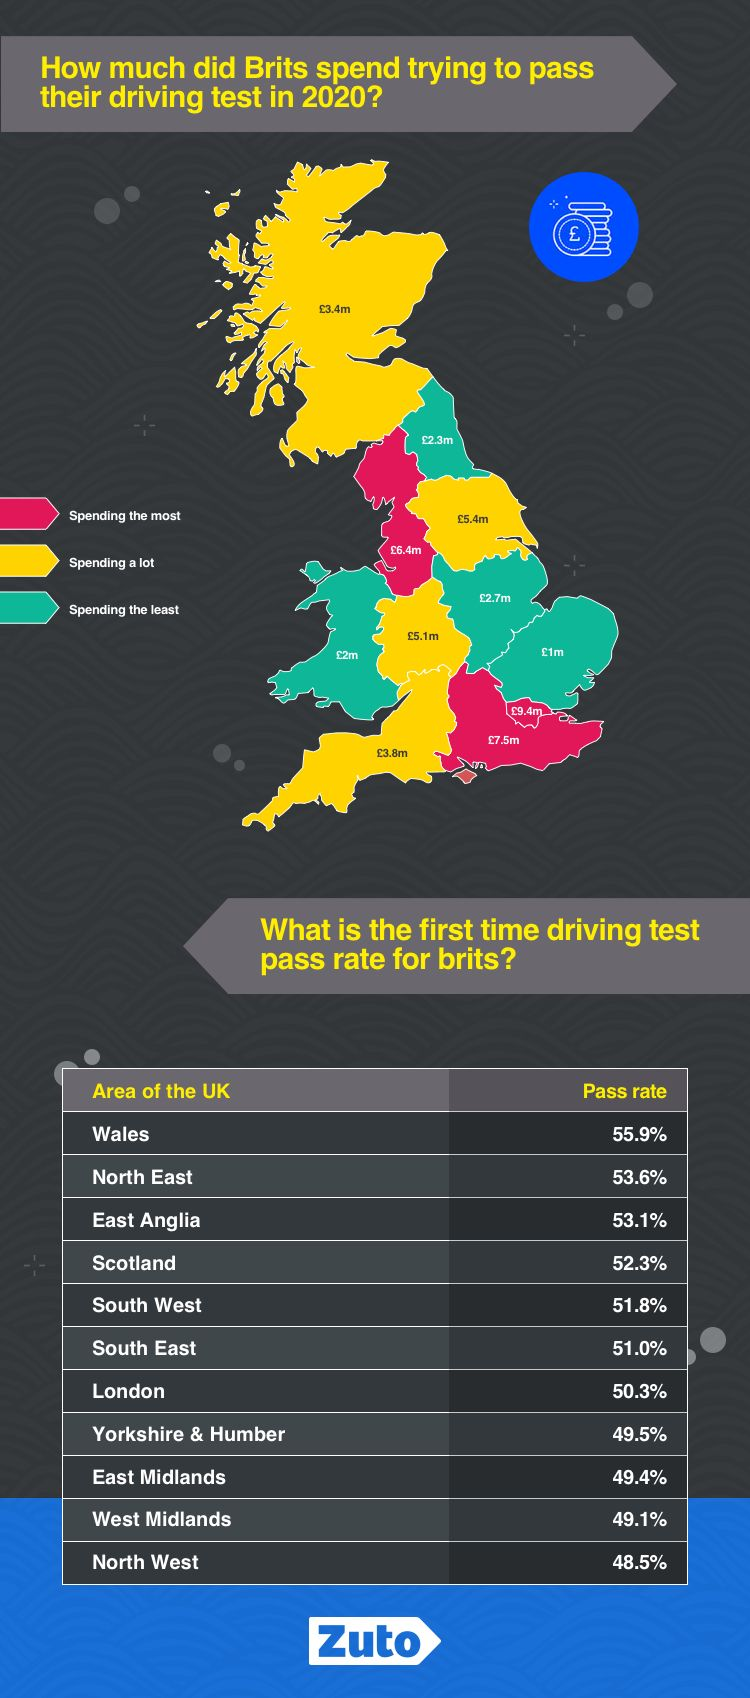 Image of how much brits spent on driving tests and their pass rates by region